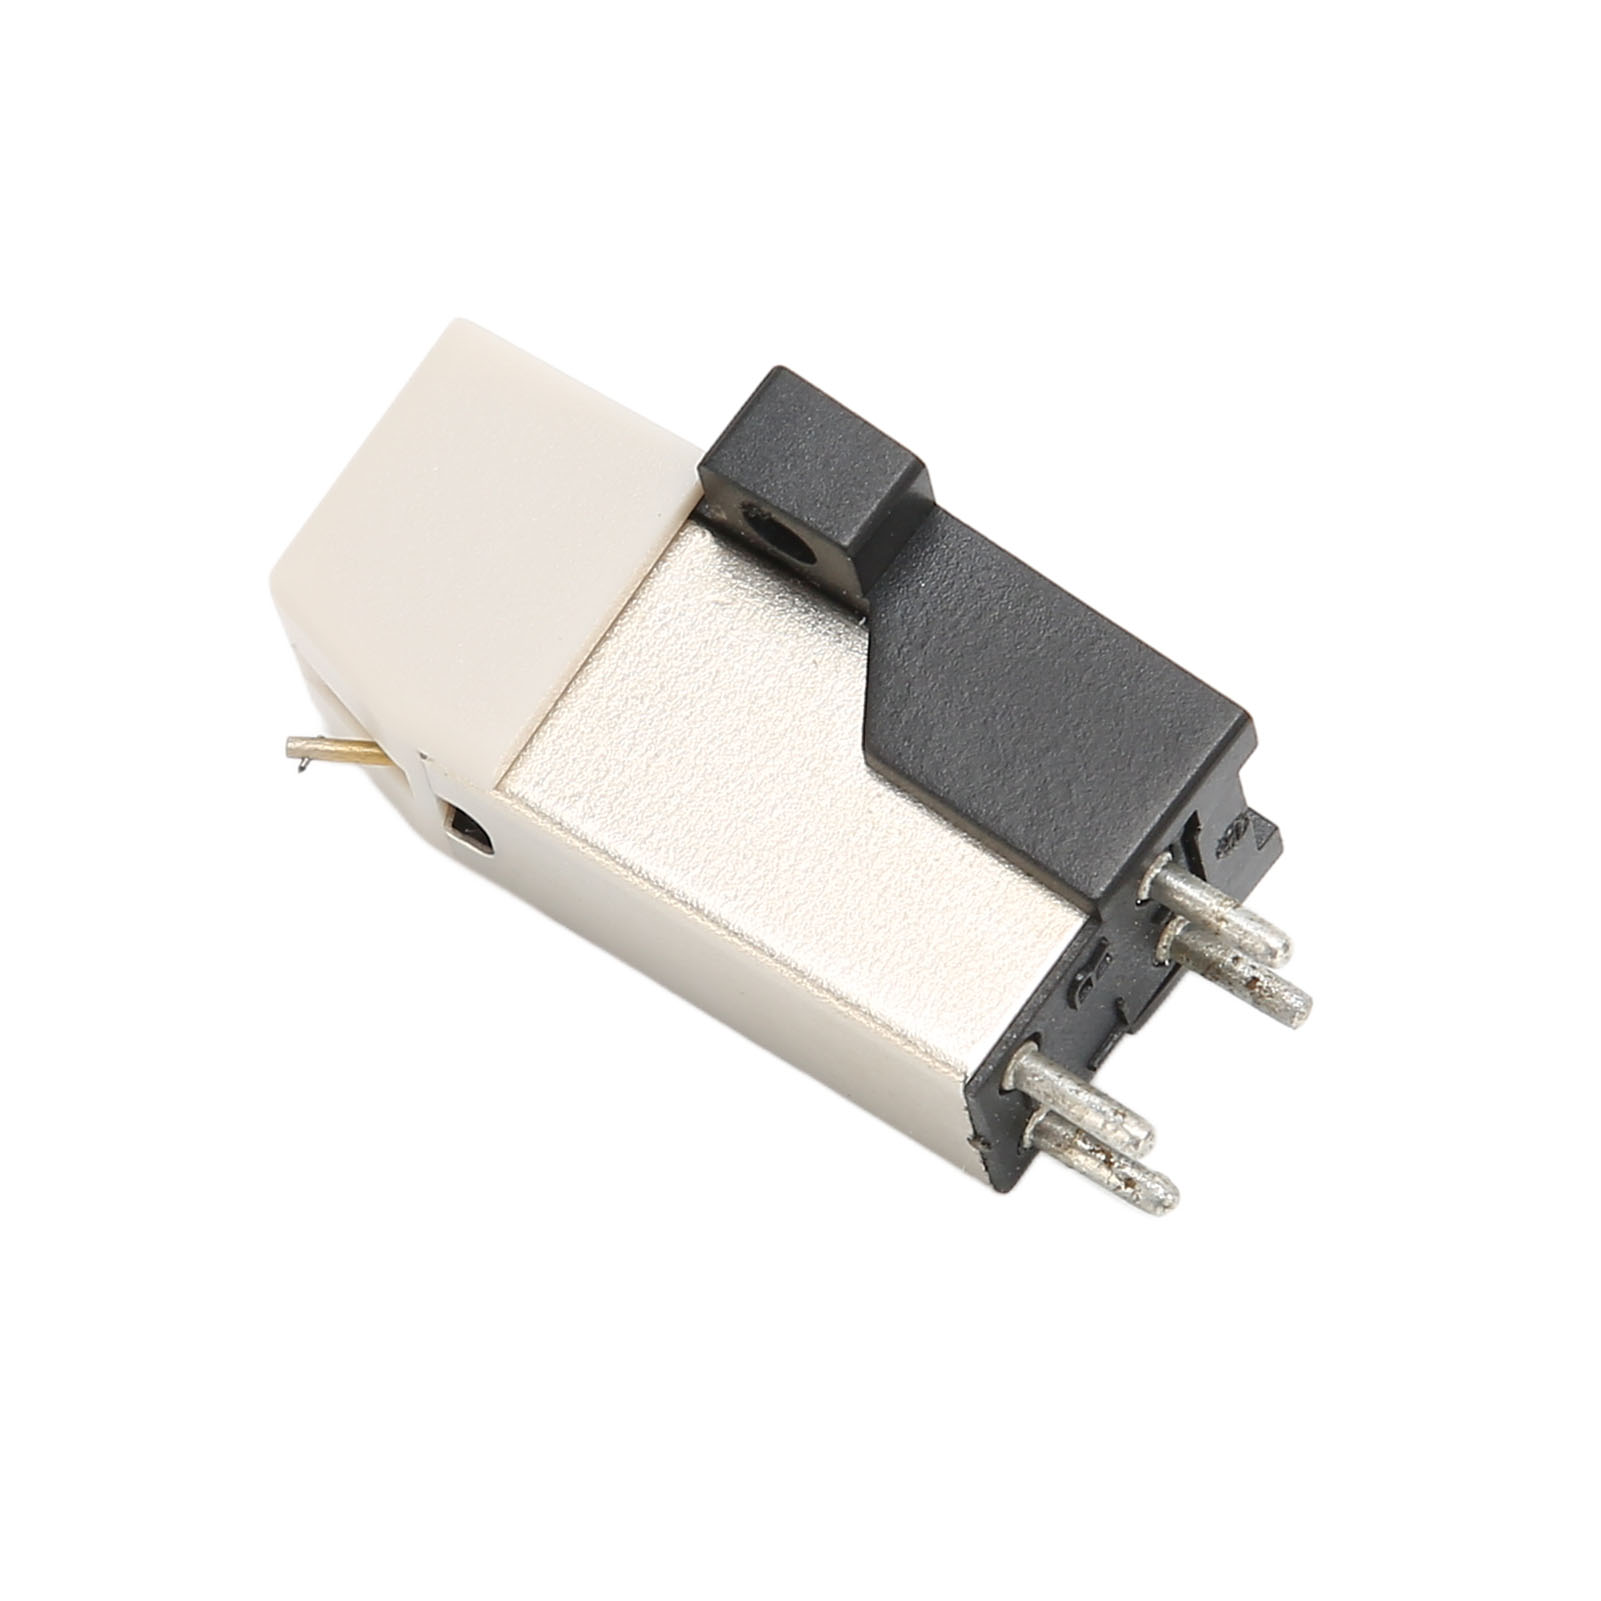 Magnetic-Cartridge-Stylus-Needle-Stereo-For-Turntable-LP-Vinyl-Record-Player thumbnail 15